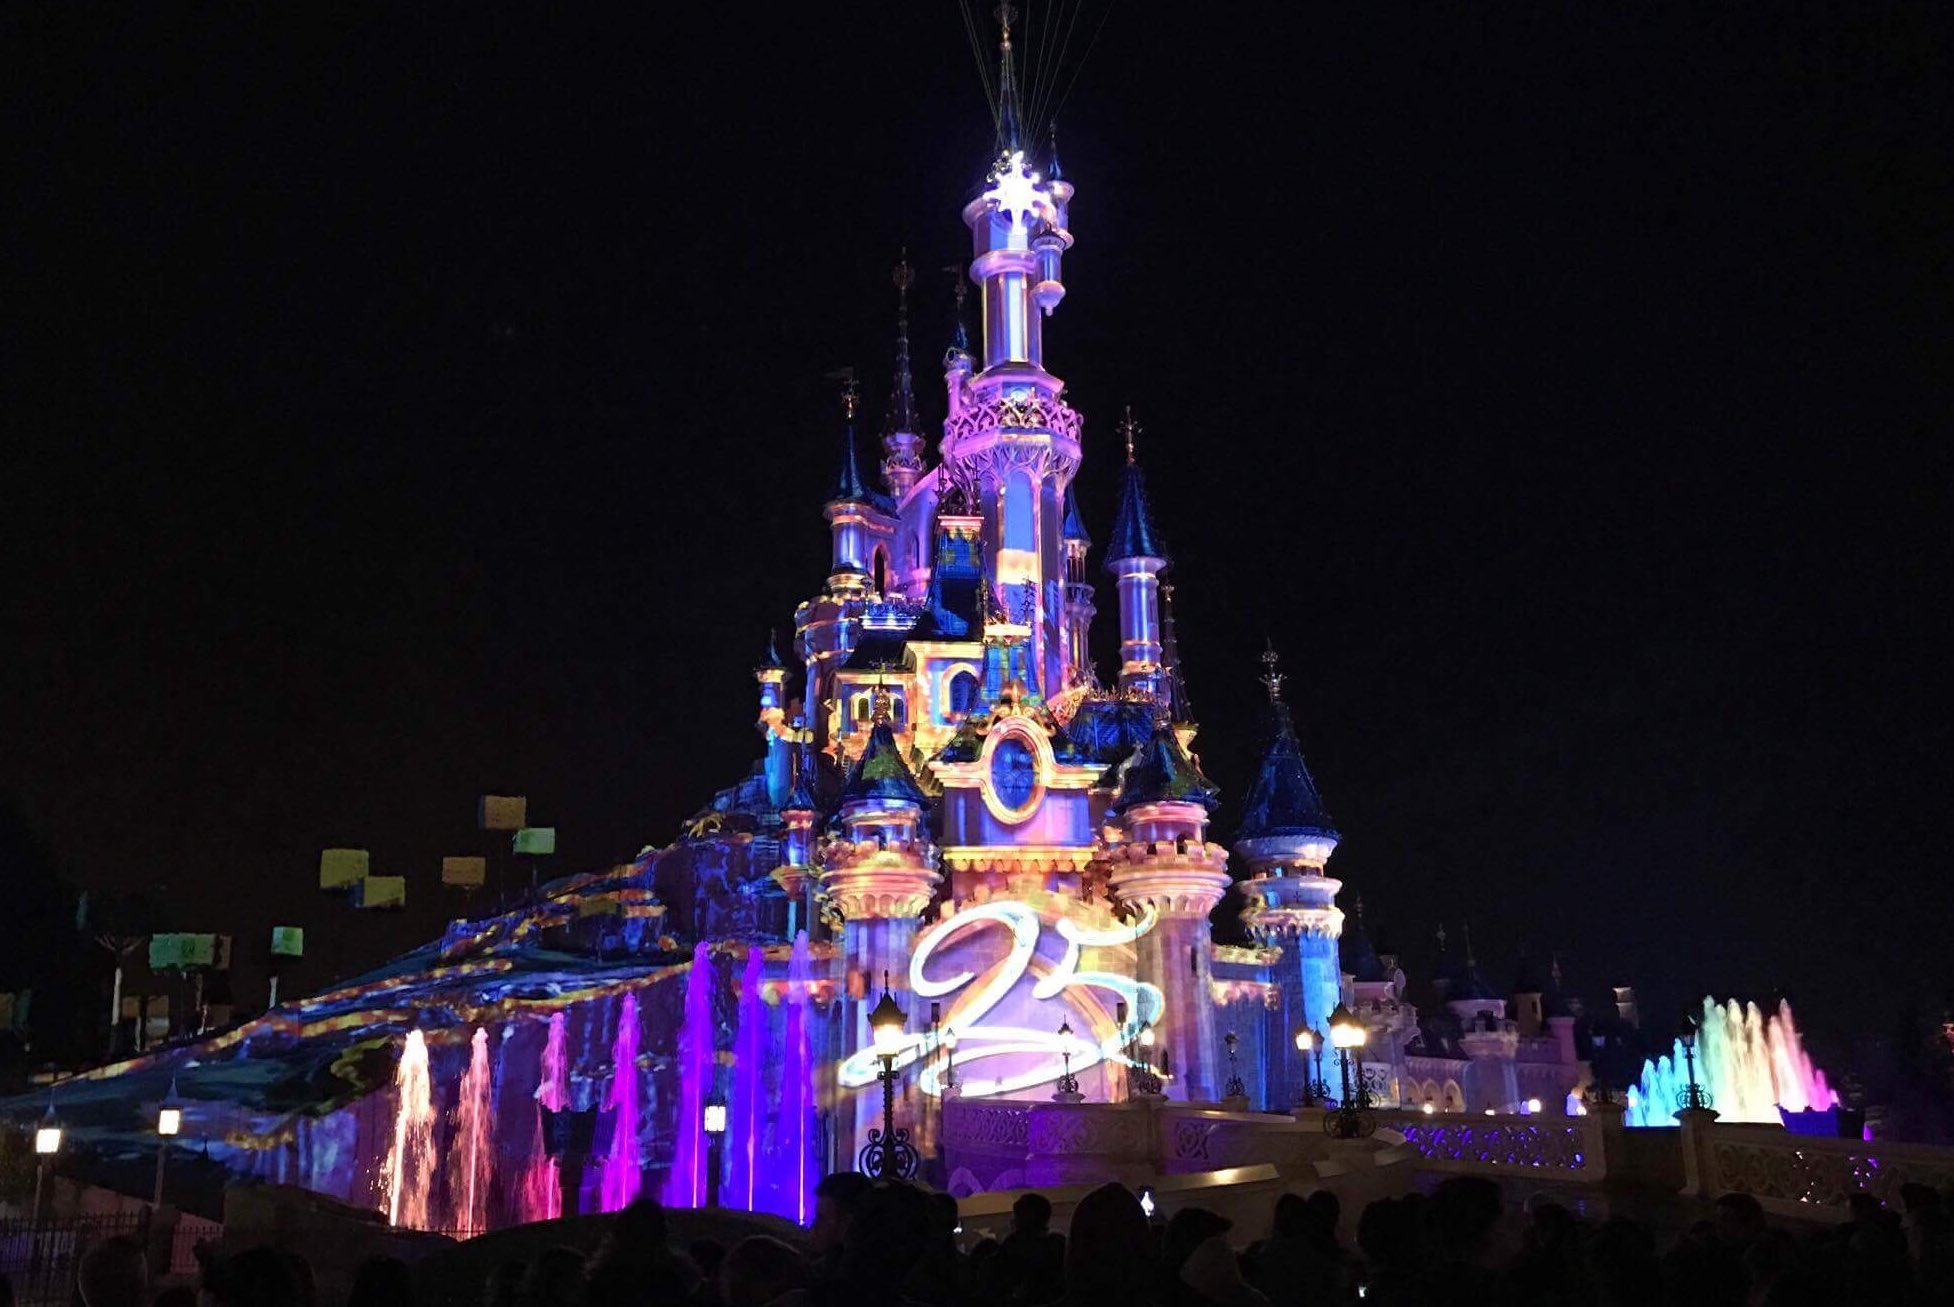 Thank you friends for exploring this sparkling  Disneyland Paris 25th Anniversary launch weekend with us! https://t.co/YroLxVVwlr